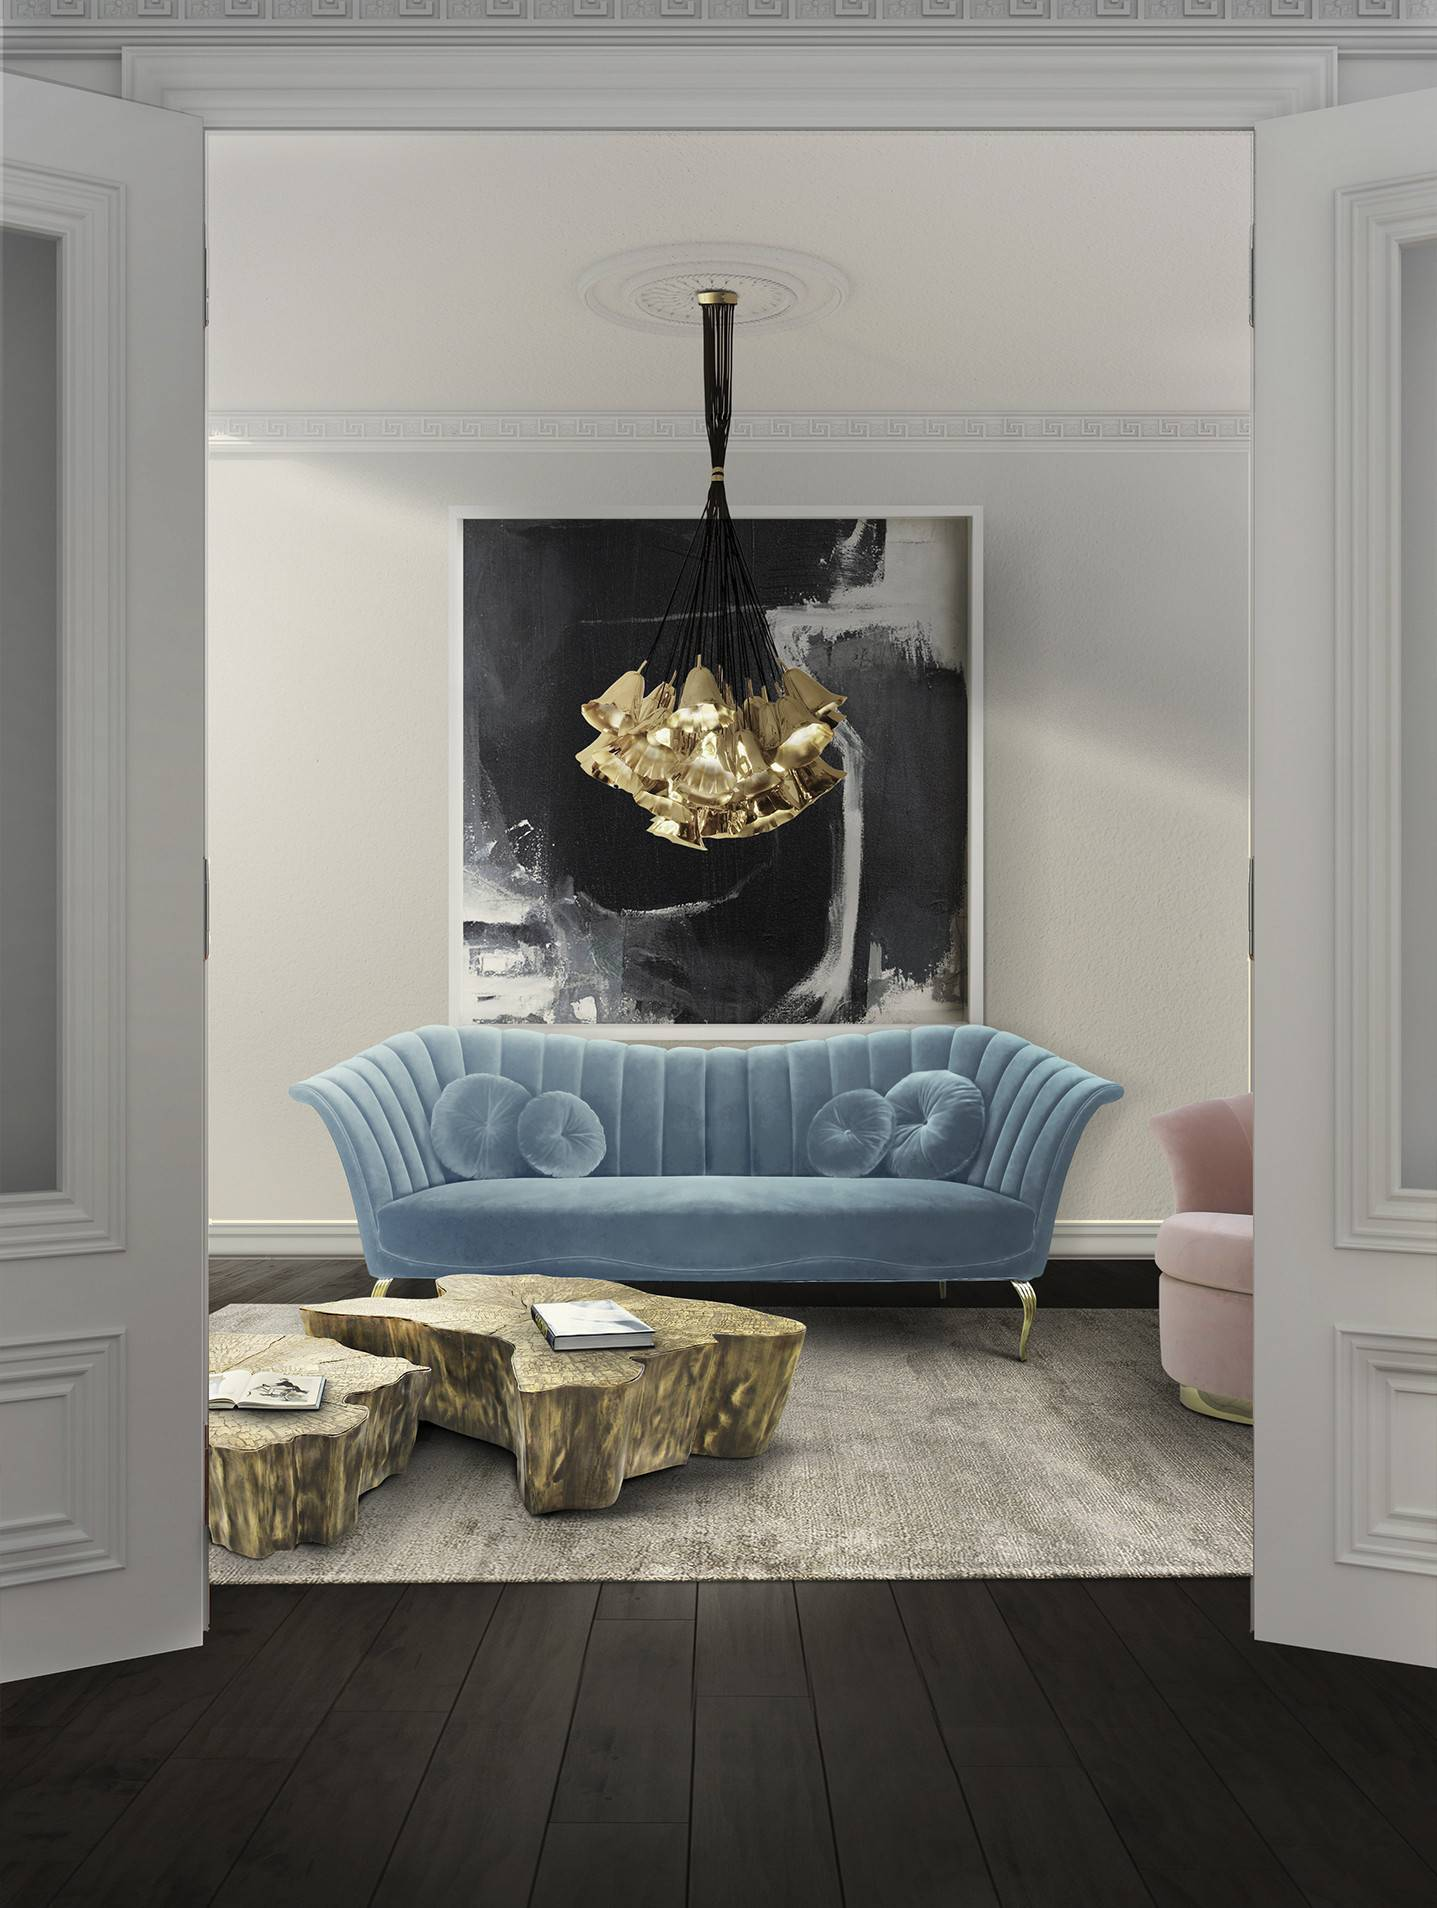 gray hardwood floors bedroom of 45 collection gray living room set stock living room decor ideas in dining room colors 2016 new living room traditional decorating ideas awesome shaker chairs